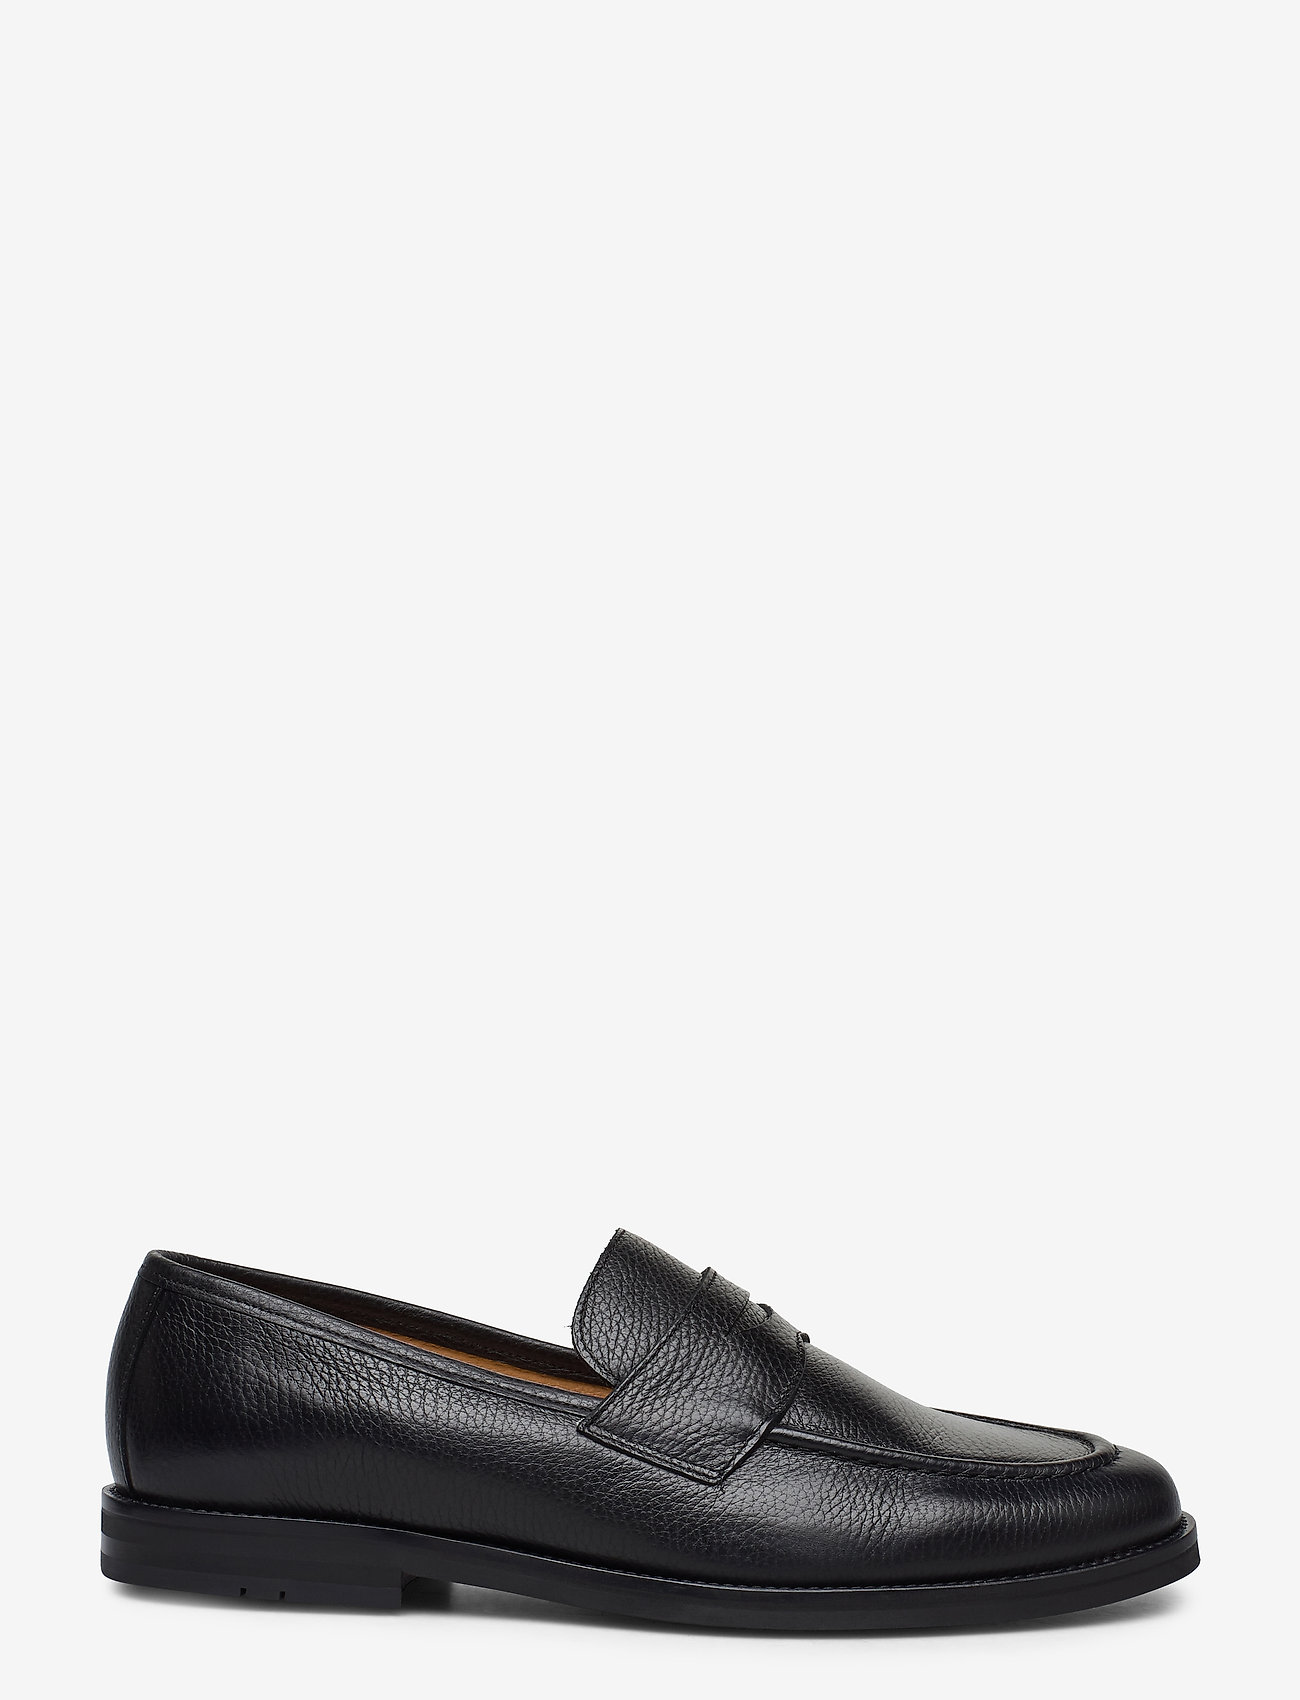 Morris - Morris Penny Loafers - loafers - black - 1